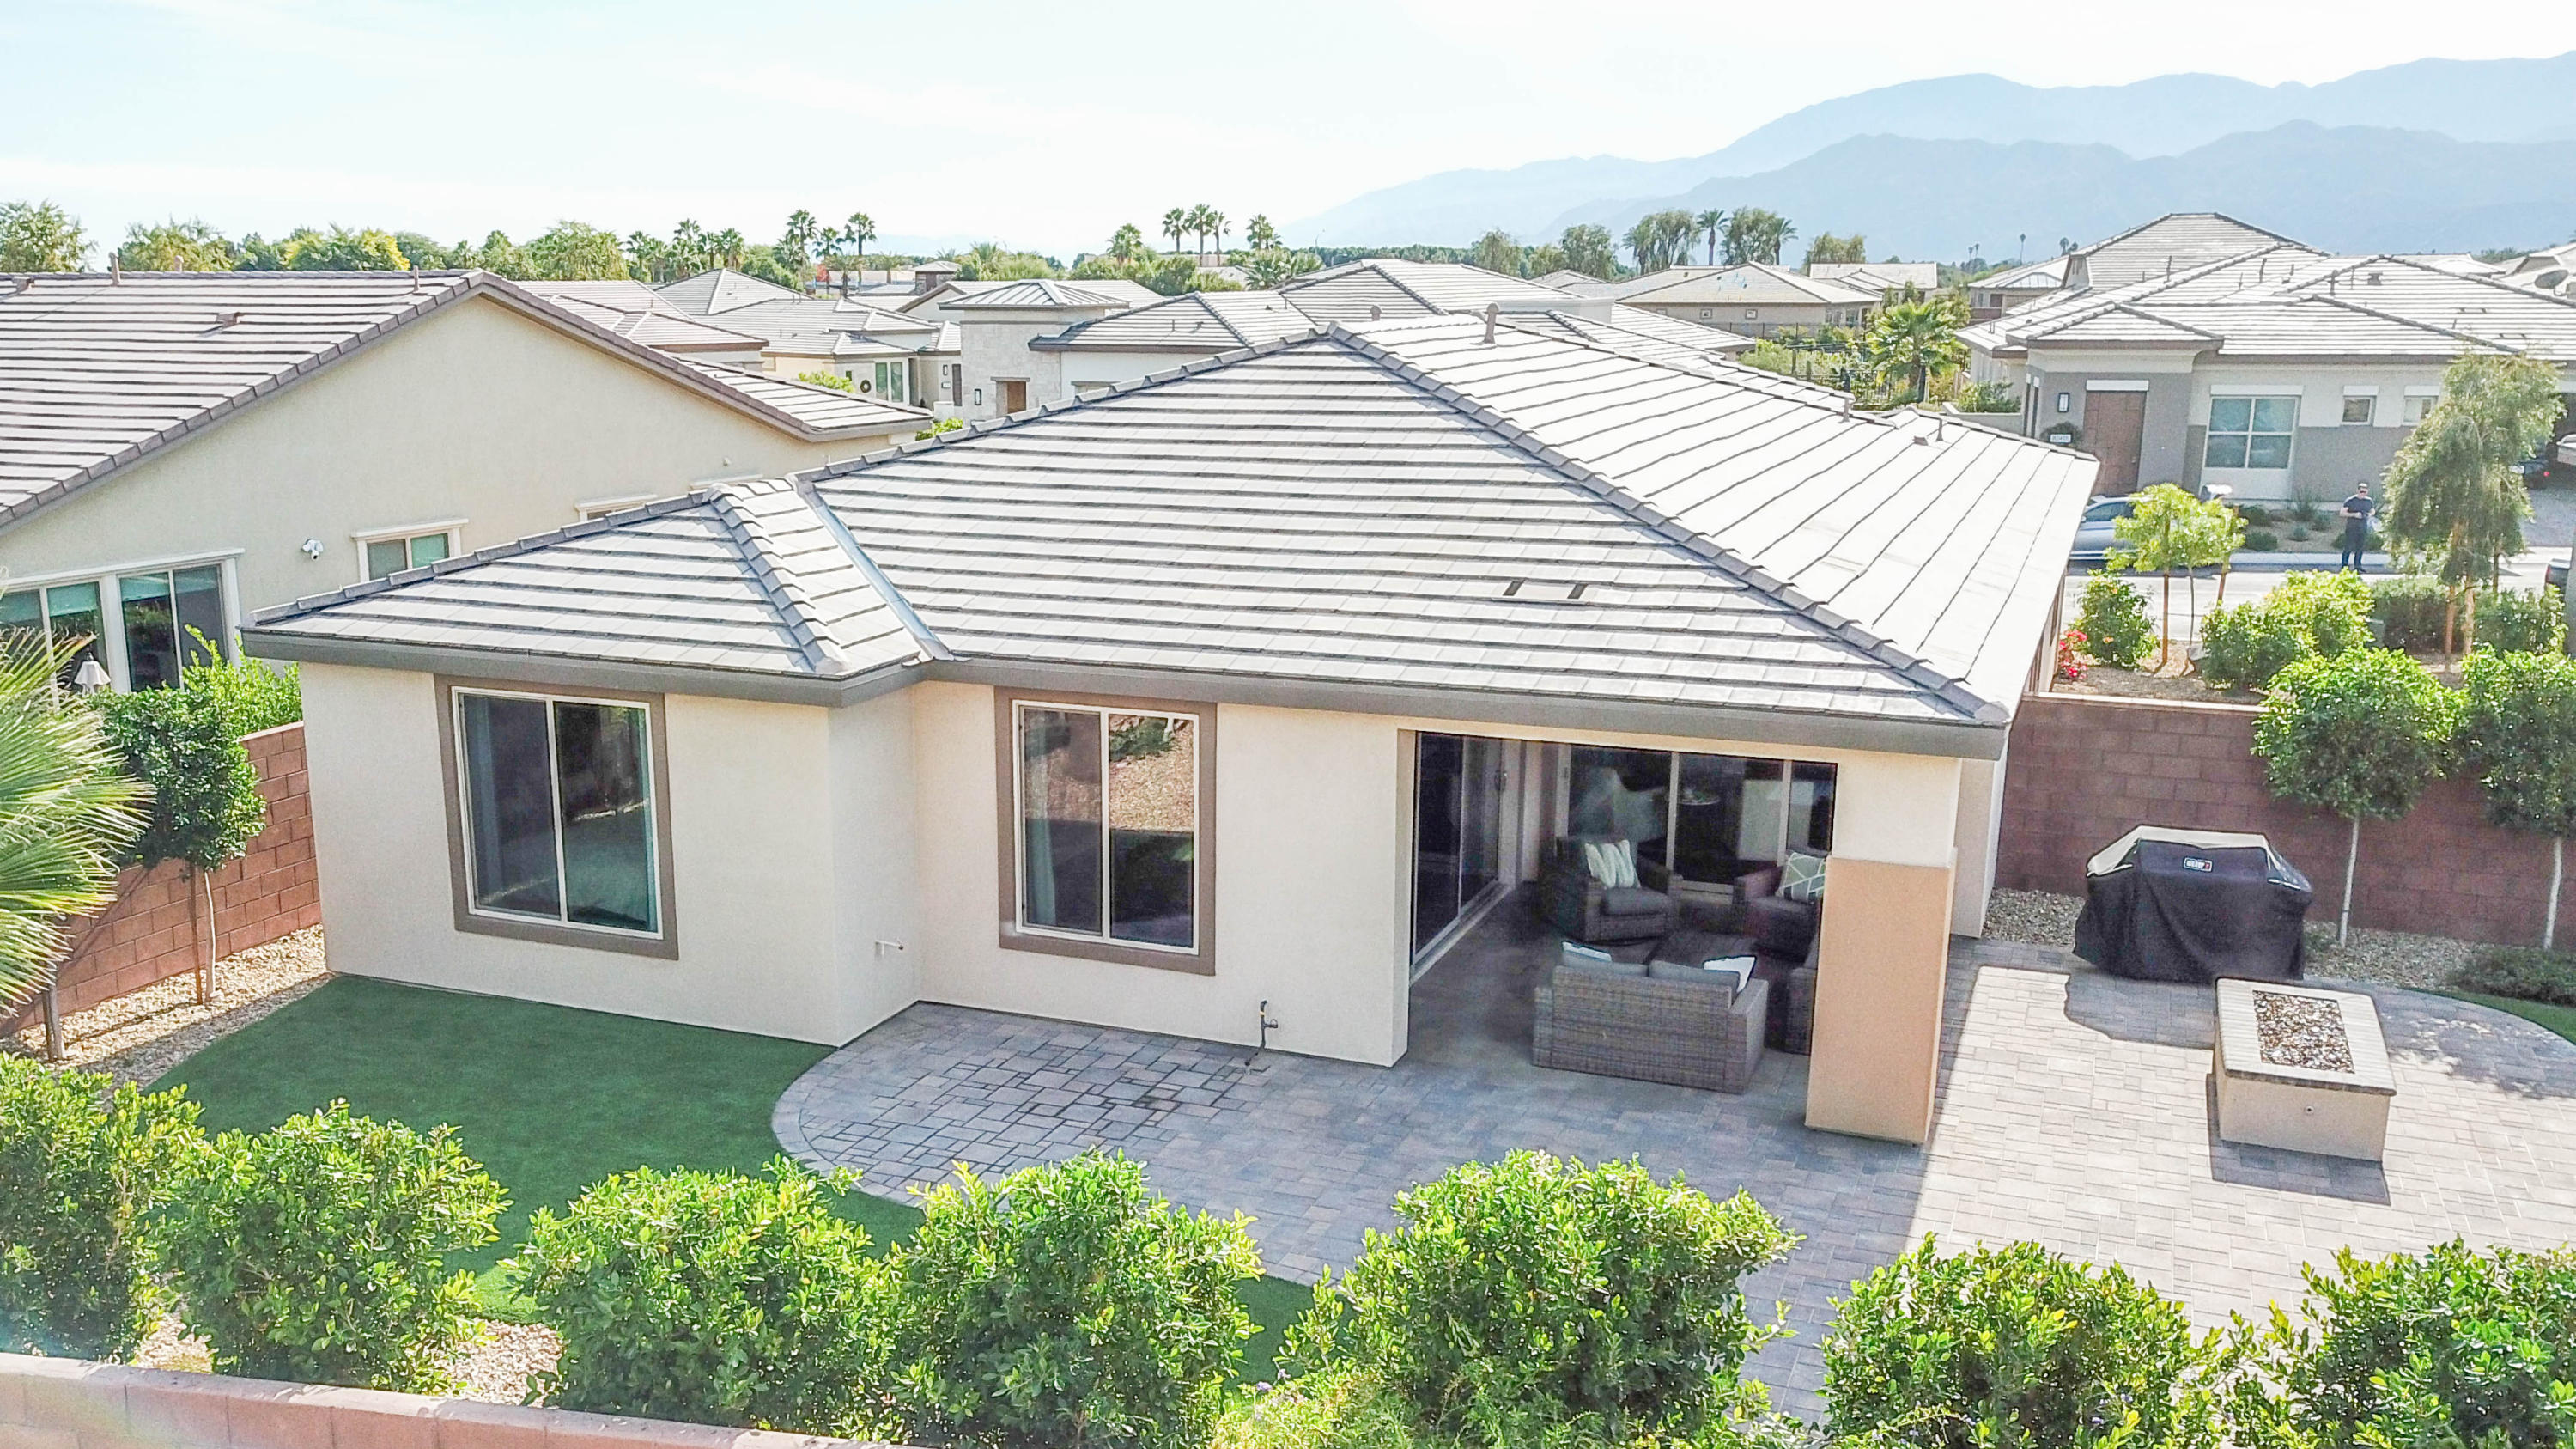 82430 Cathedral Canyon Drive, Indio, California 92201, 3 Bedrooms Bedrooms, ,2 BathroomsBathrooms,Residential,For Sale,82430 Cathedral Canyon Drive,219035322